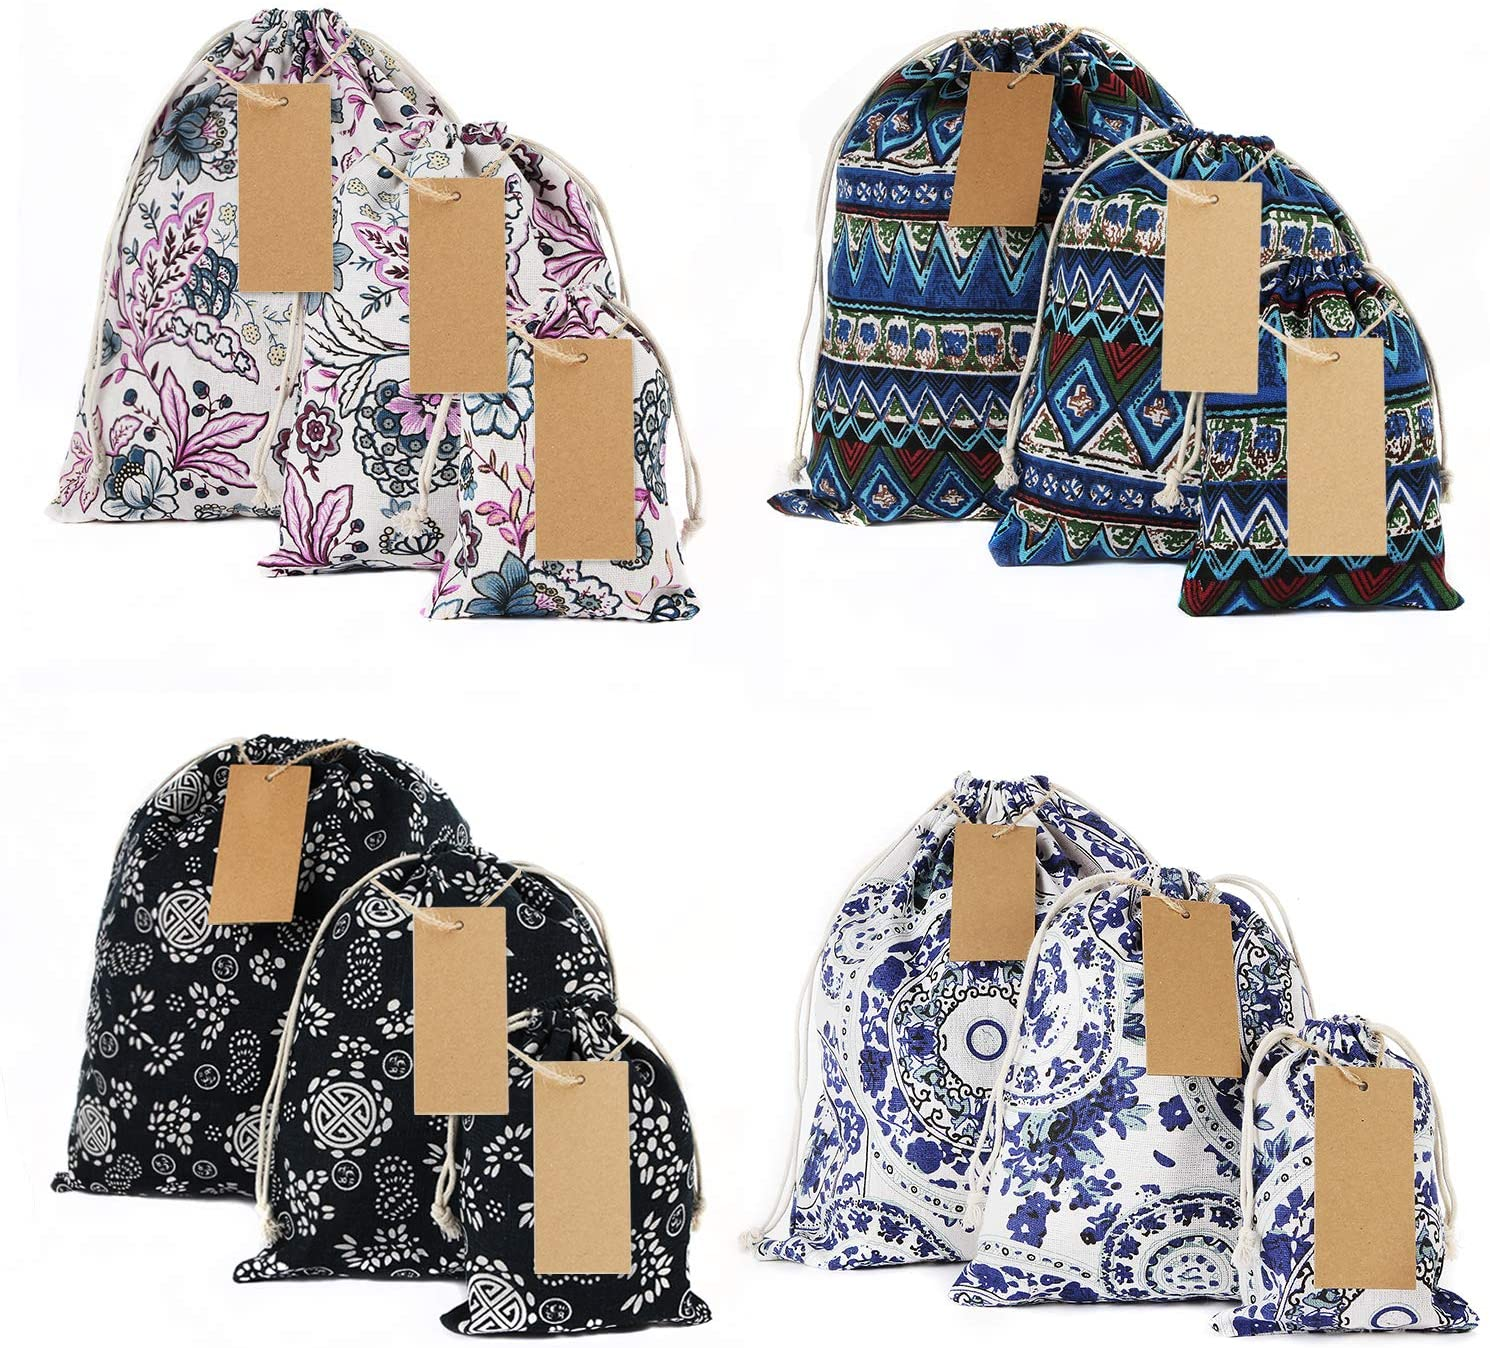 Great bags for EVERYTHING, I use these daily. I love love love them!